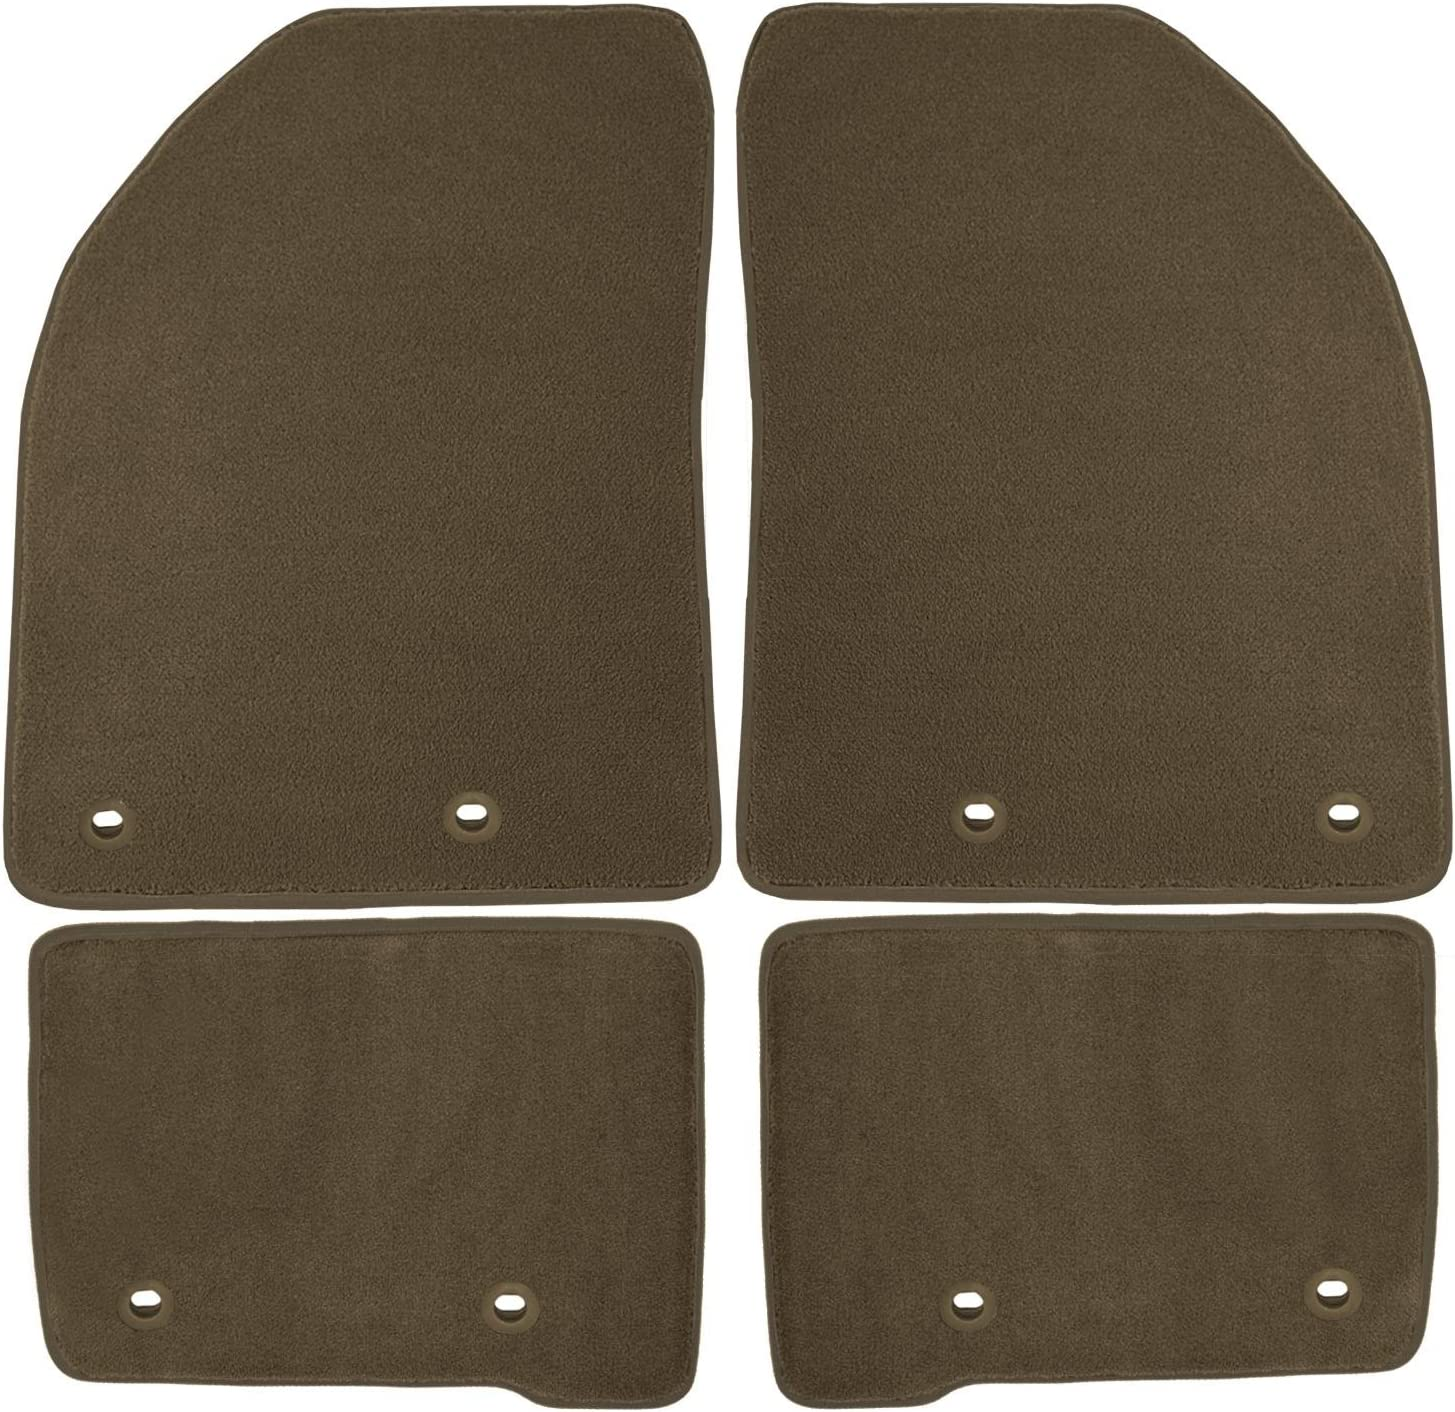 70 Oz Carpet Oak Coverking Front Custom Fit Floor Mats for Select Lexus GX470 Models